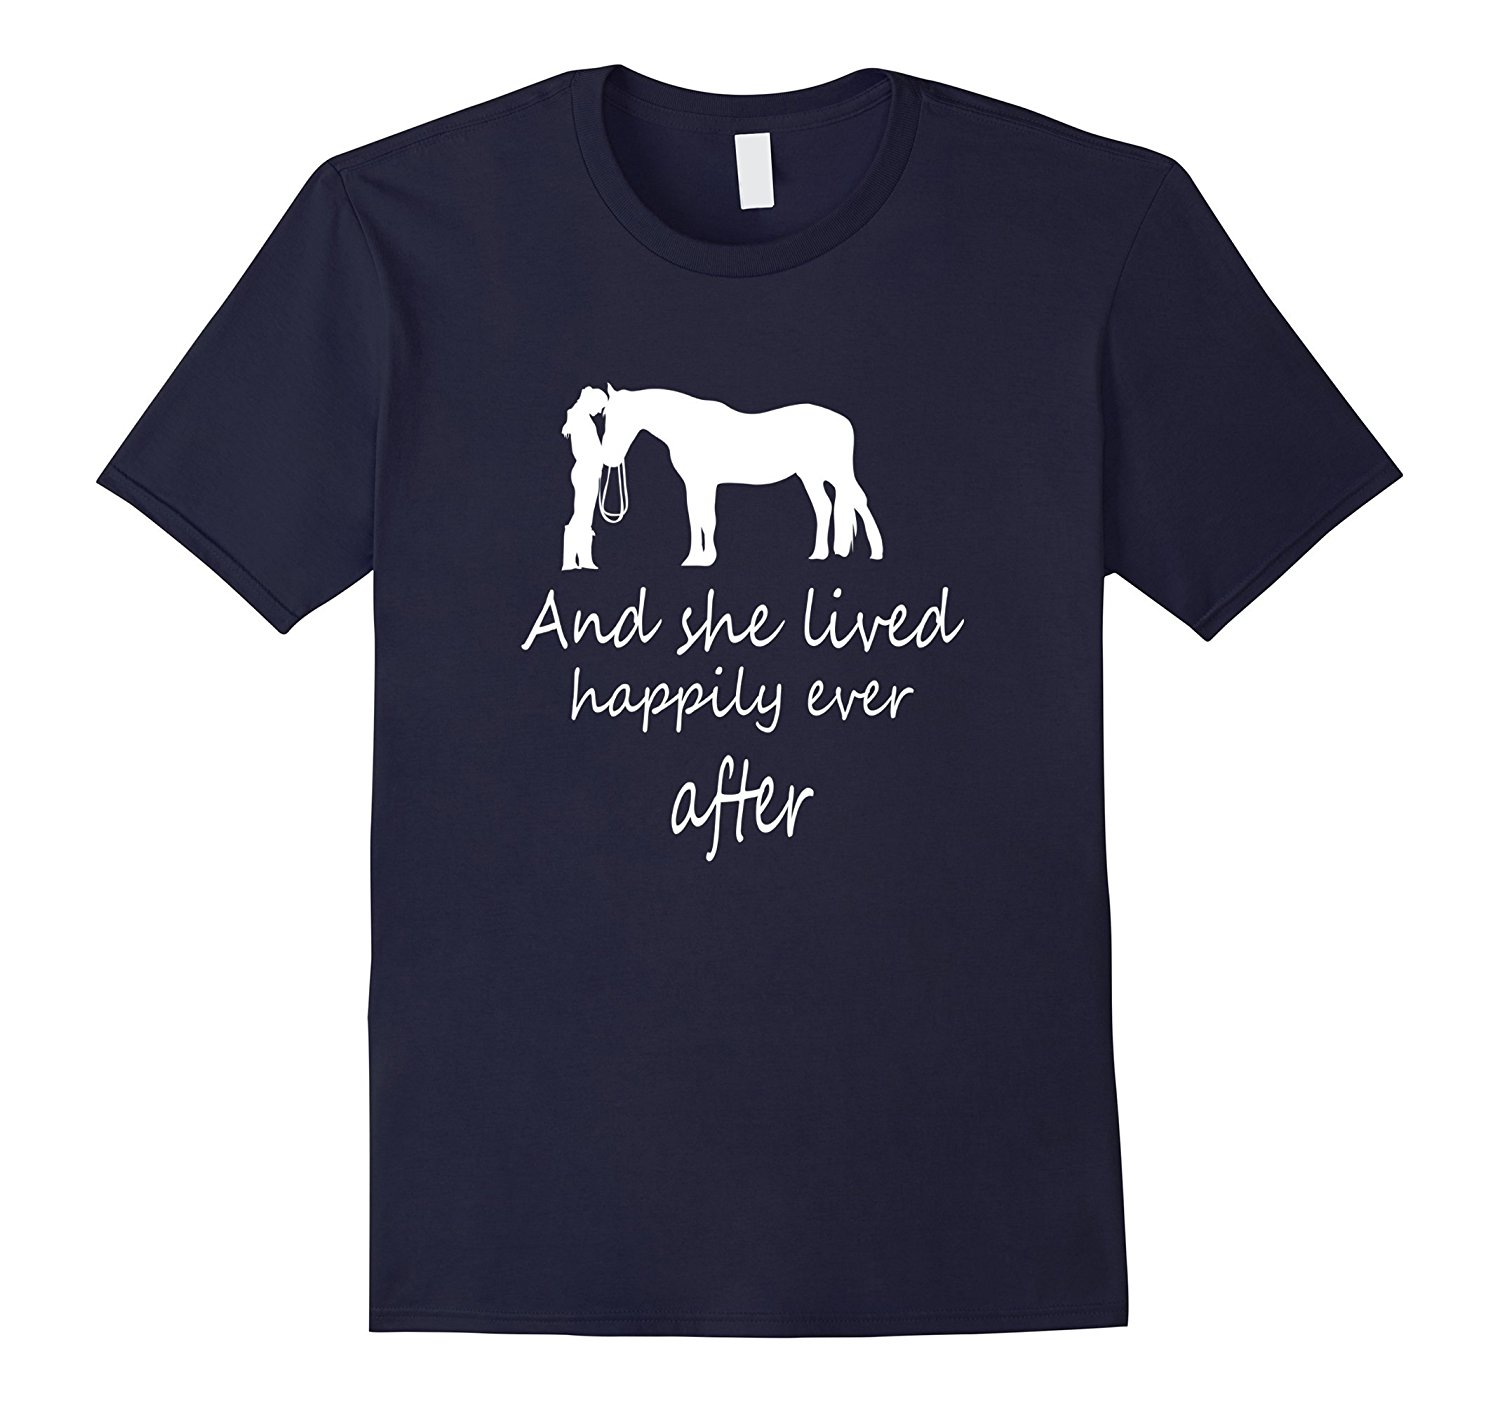 I Saw Her with Horse Tshirt and She Lived Happily Ever After Printed Summer Style Tees Male Harajuku Top Fitness Brand Clothing